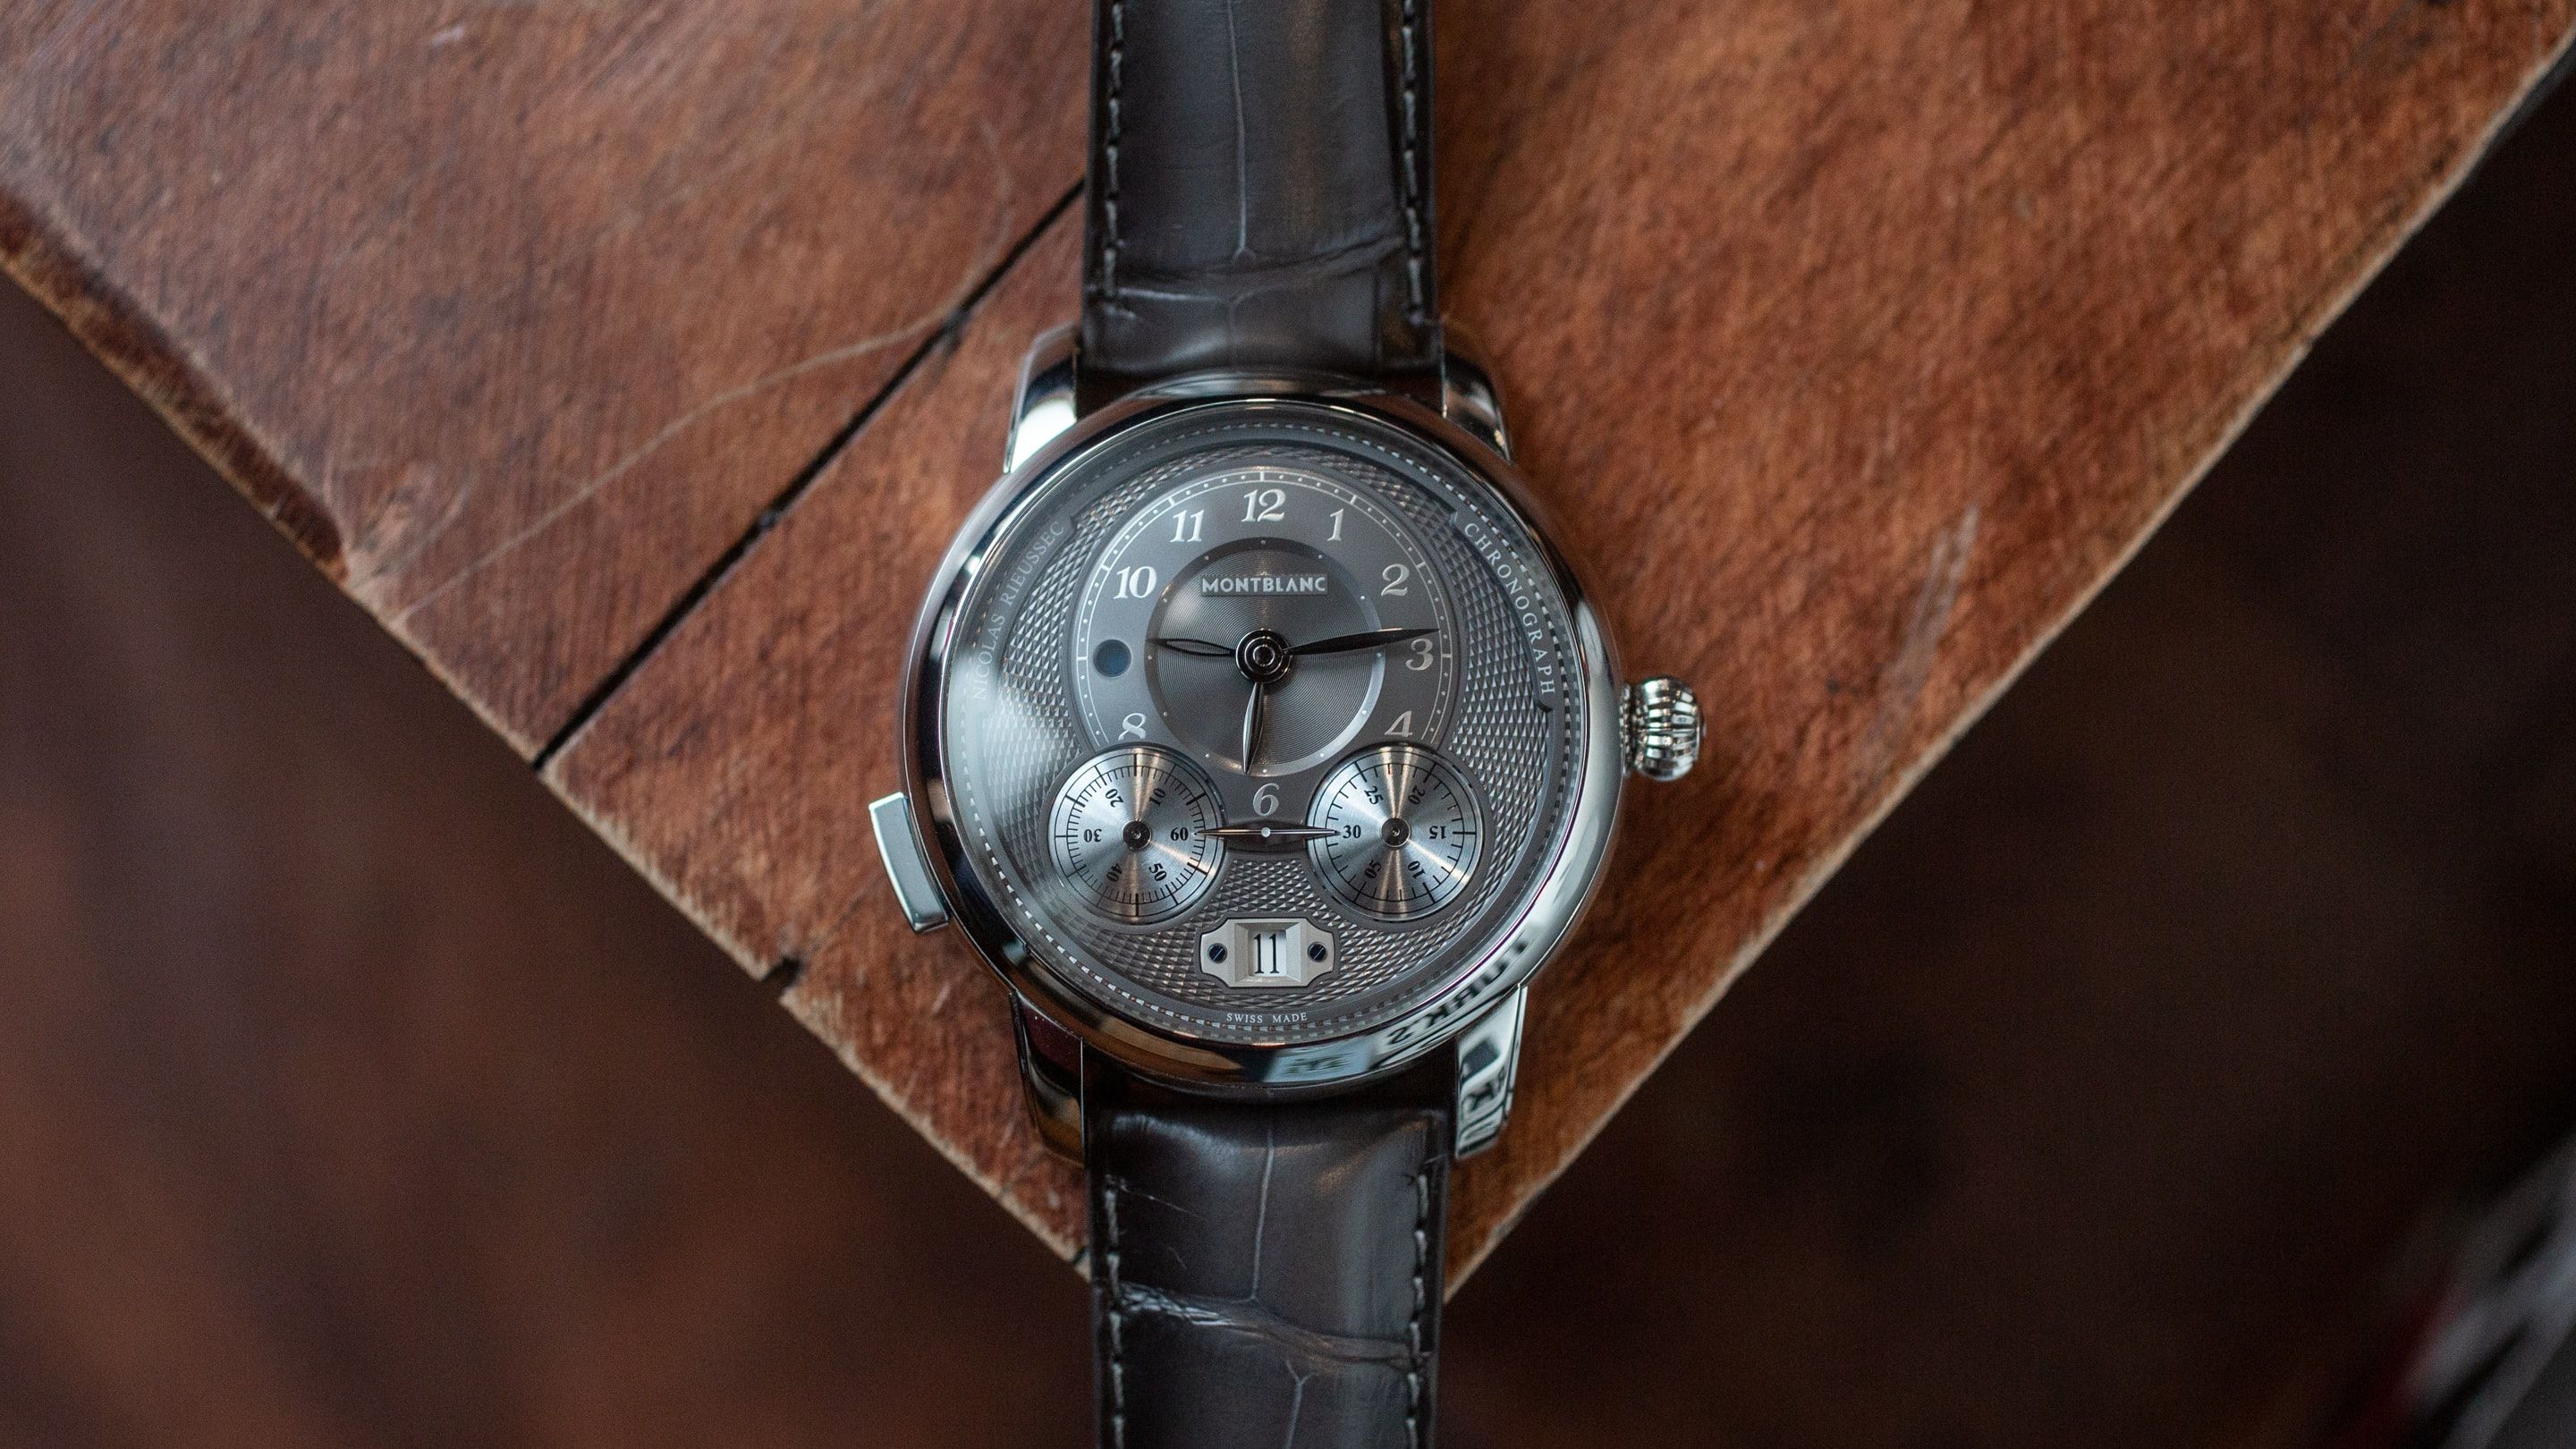 Introducing: The Montblanc Star Legacy Nicolas Rieussec Chronograph With Anthracite Dial (Live Pics & Pricing)